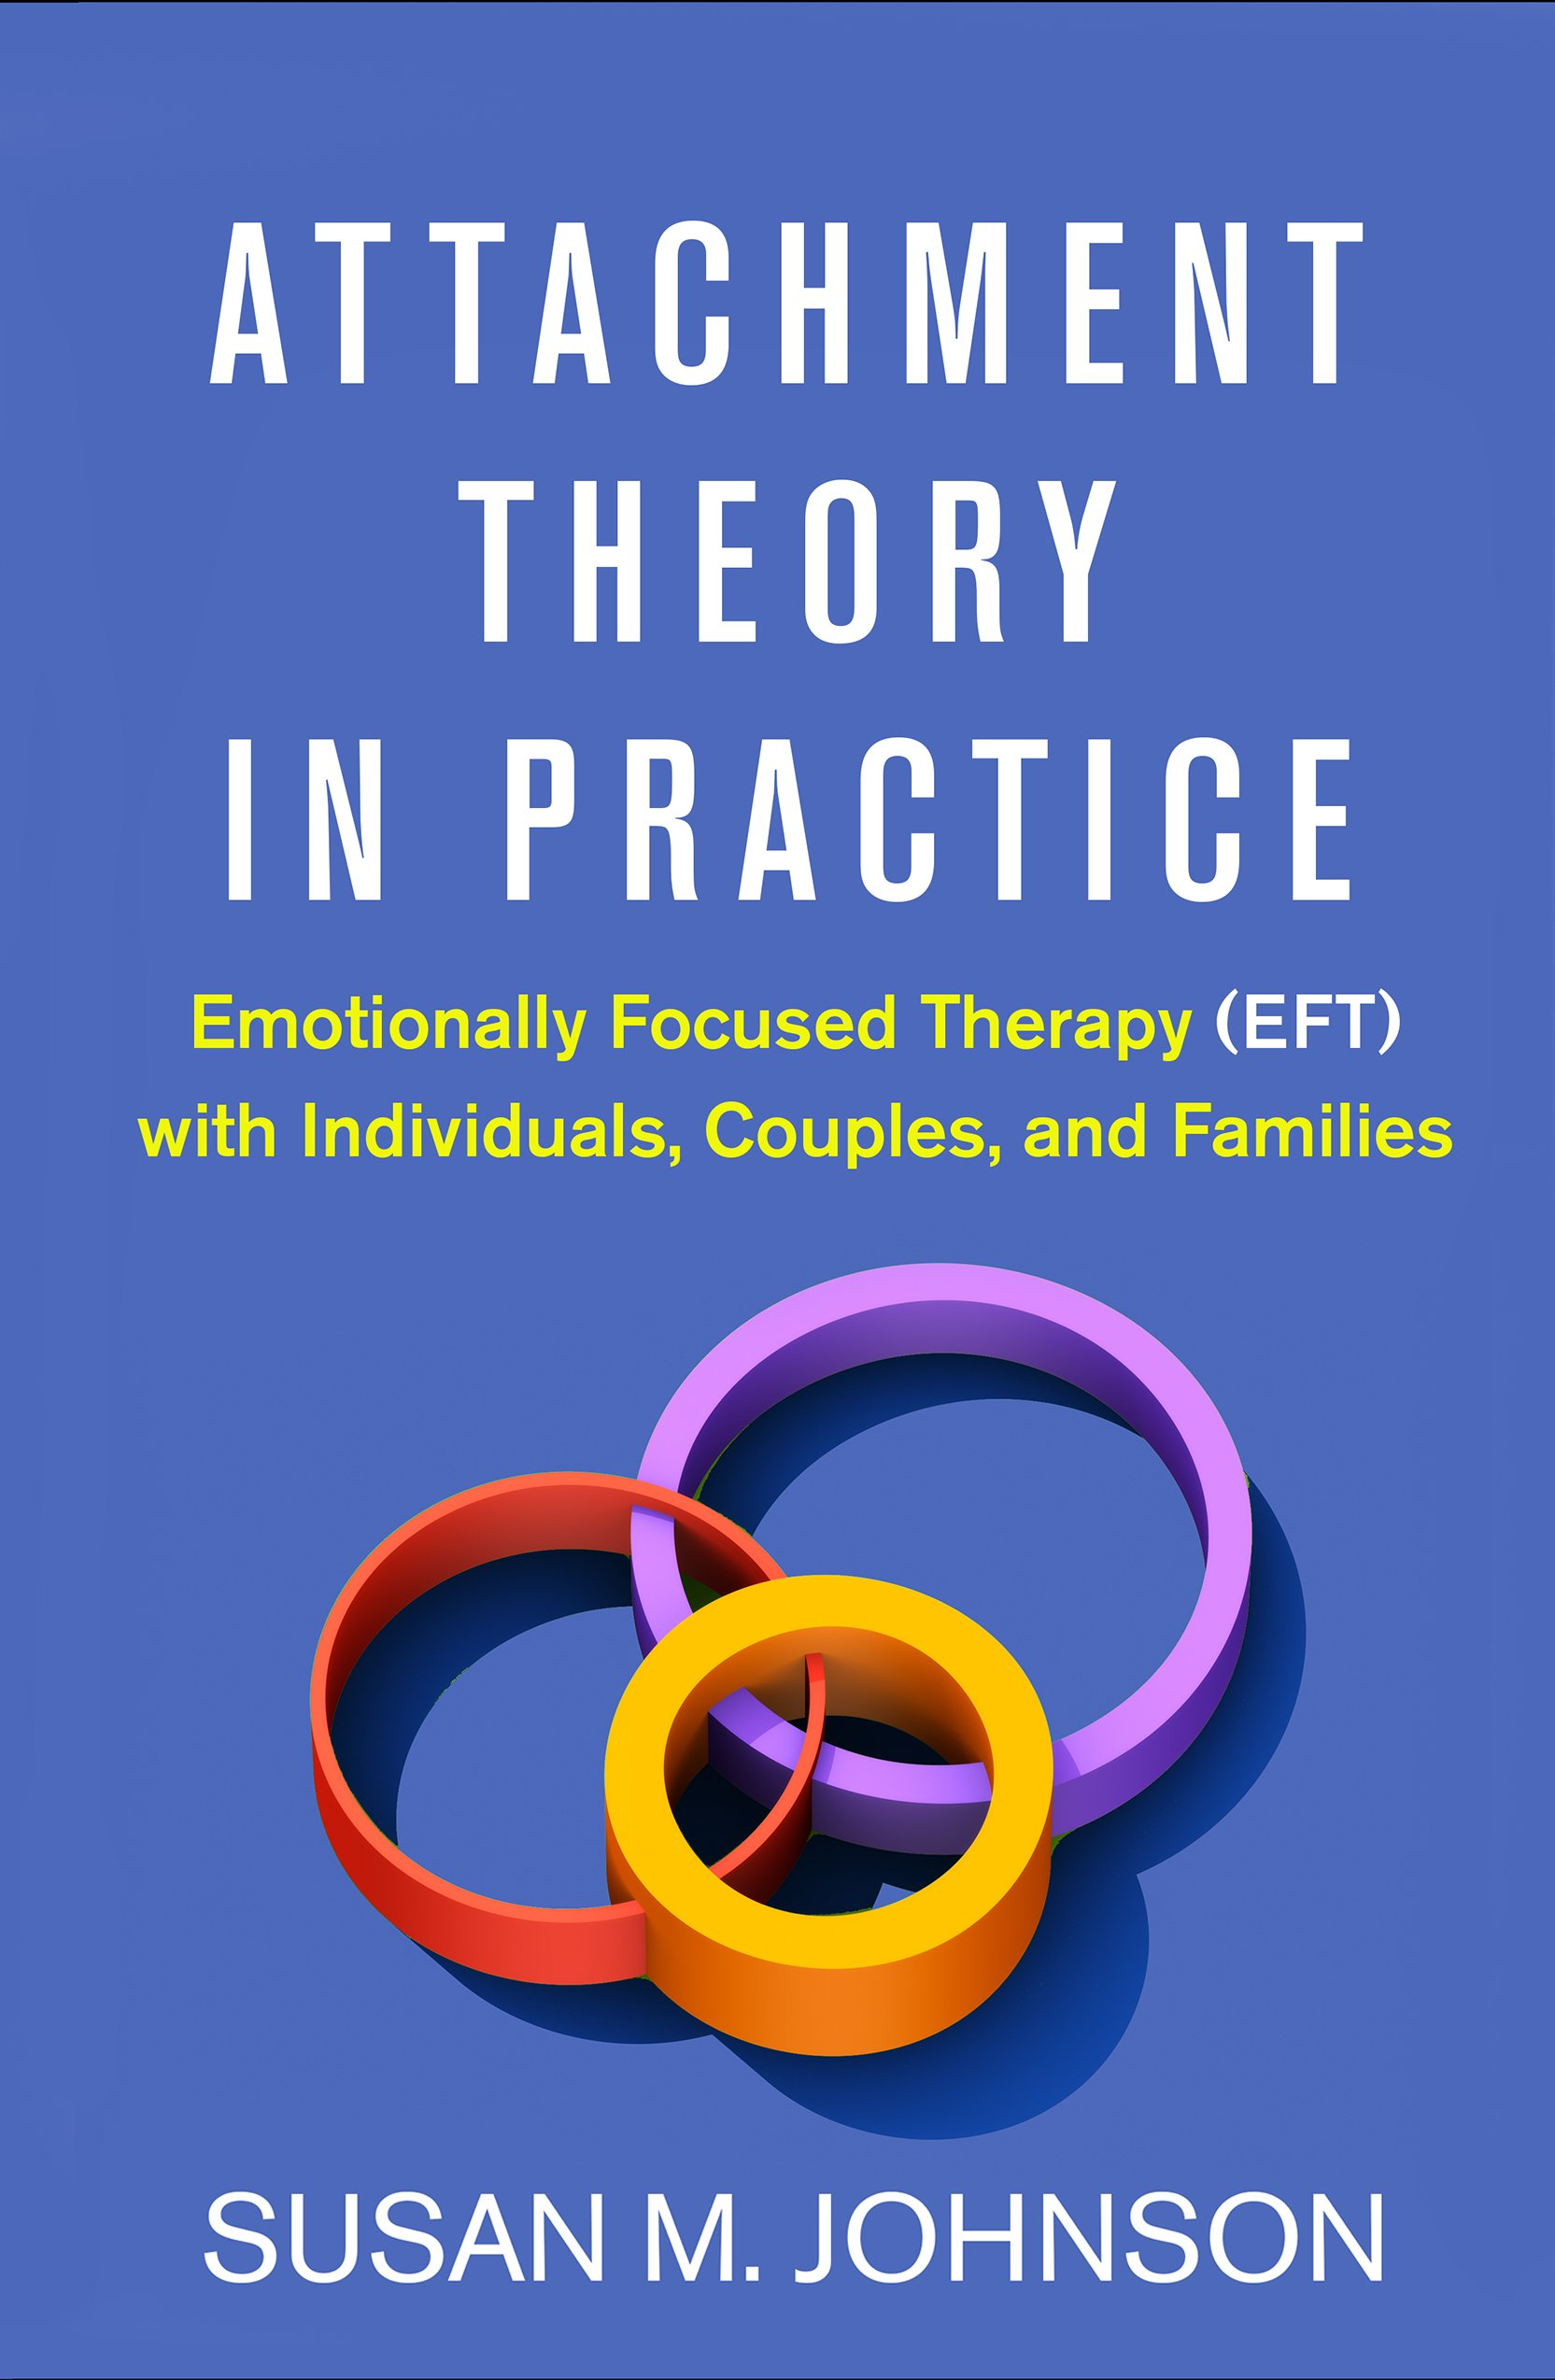 Attachment Theory in Practice: Emotionally Focused Therapy (EFT) with Individuals, Couples, and Families by The Guilford Press